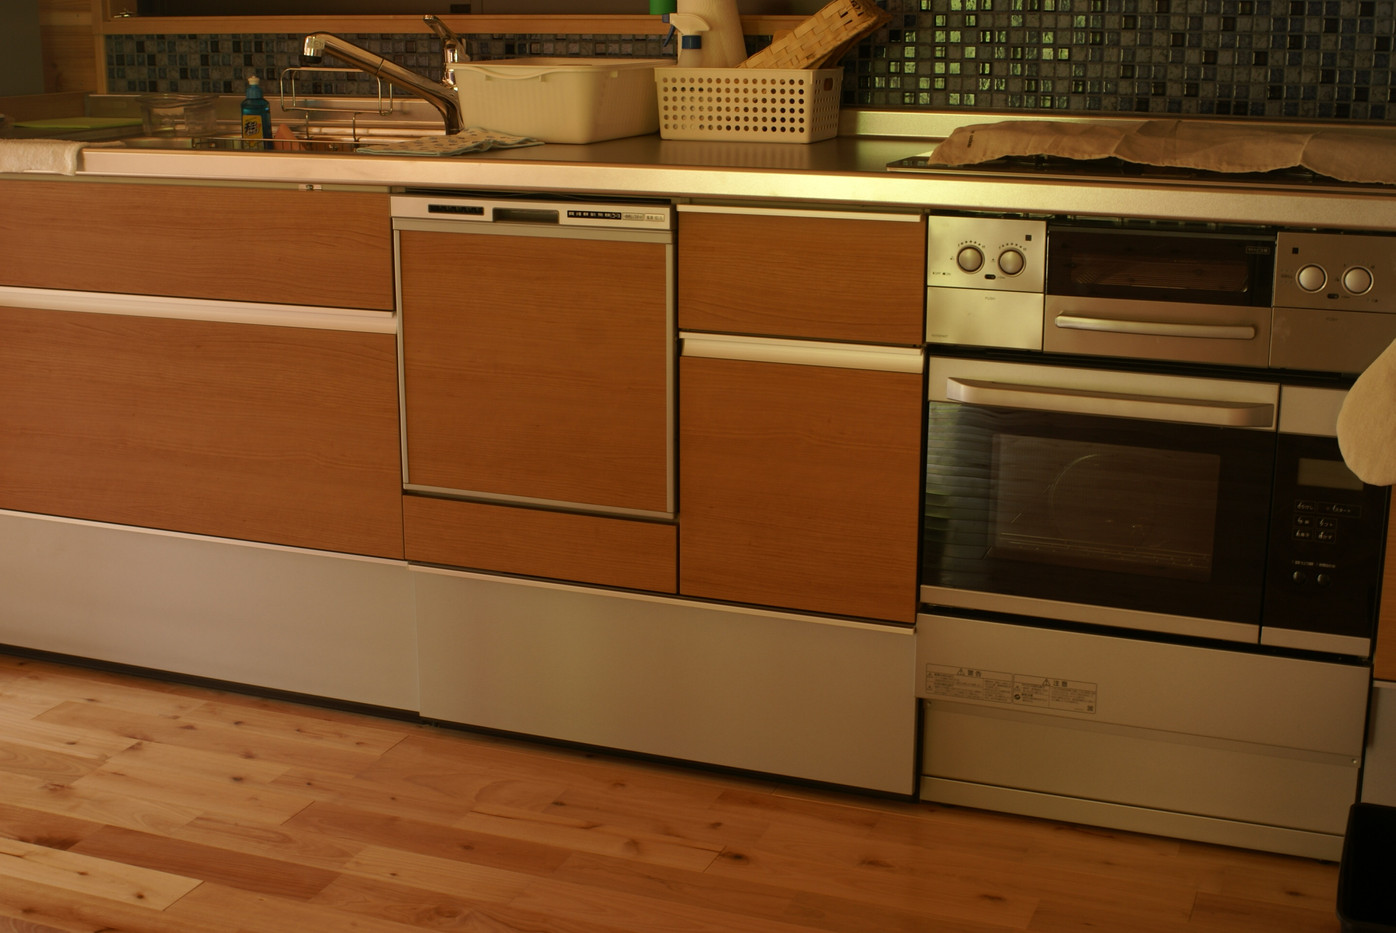 Fitted kitchen, oven, range and dishwasher